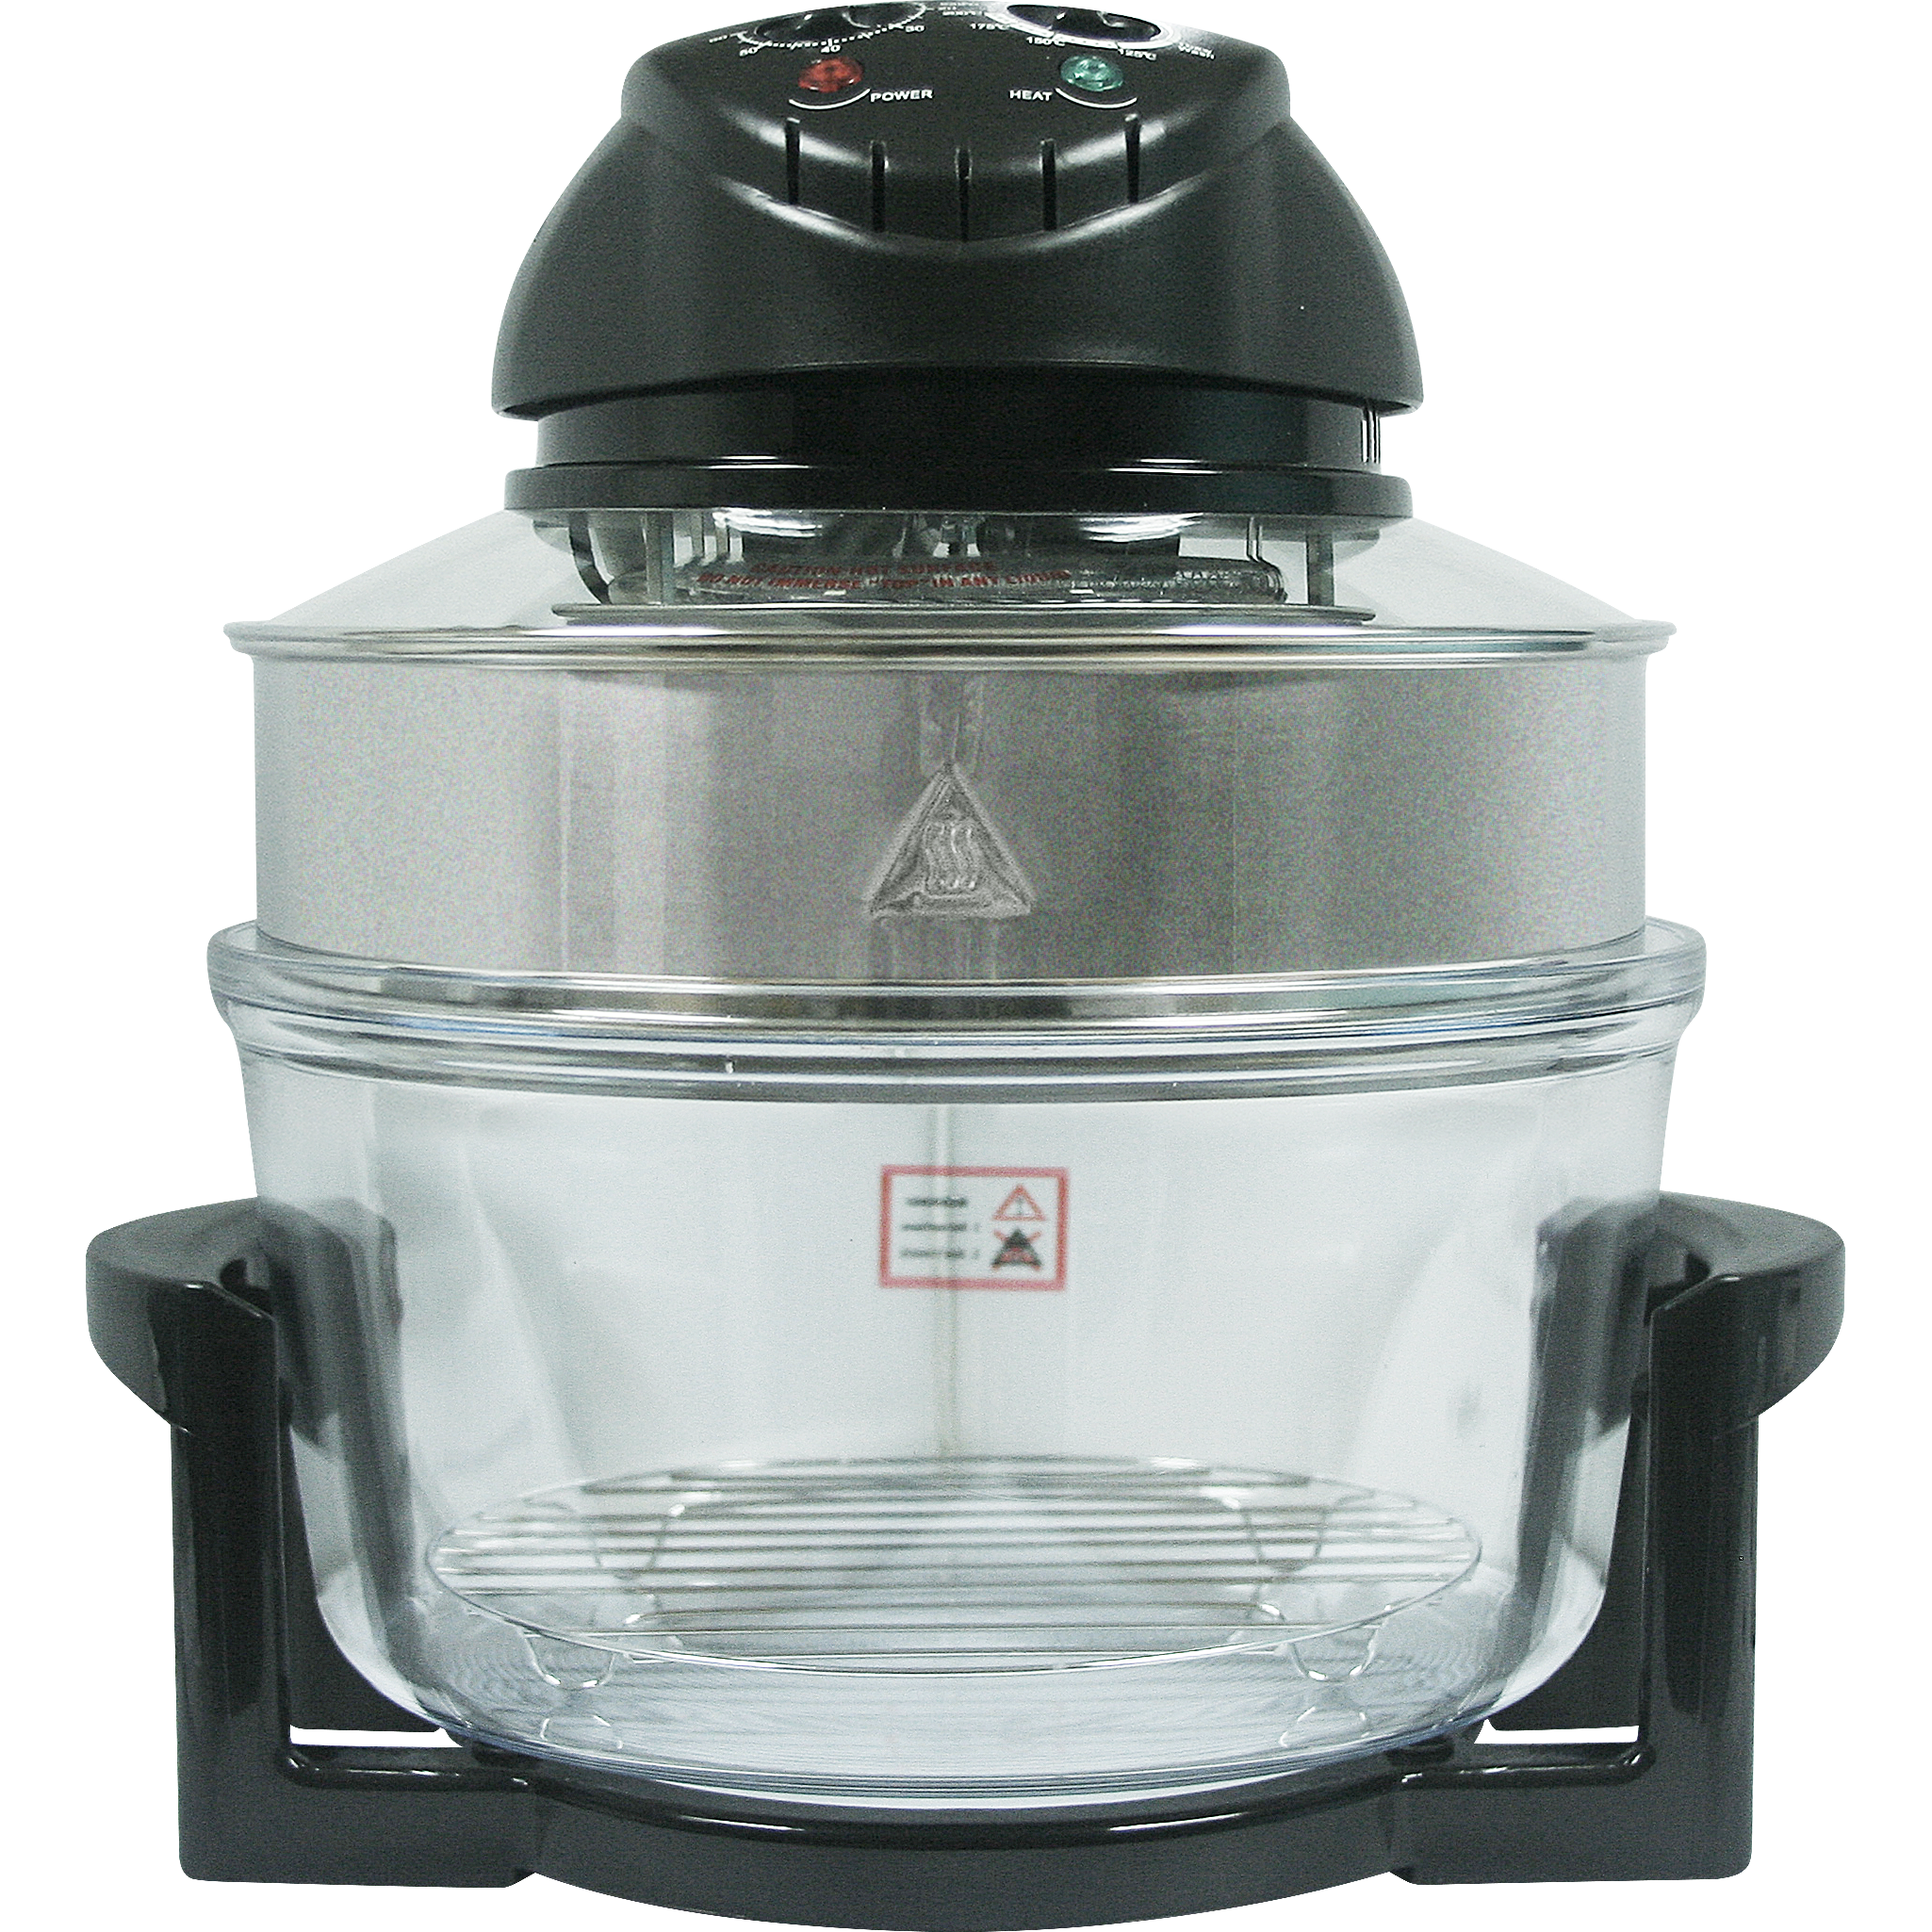 Fukuda FTB101 Turbo Broiler Halogen Oven with Extended Ring